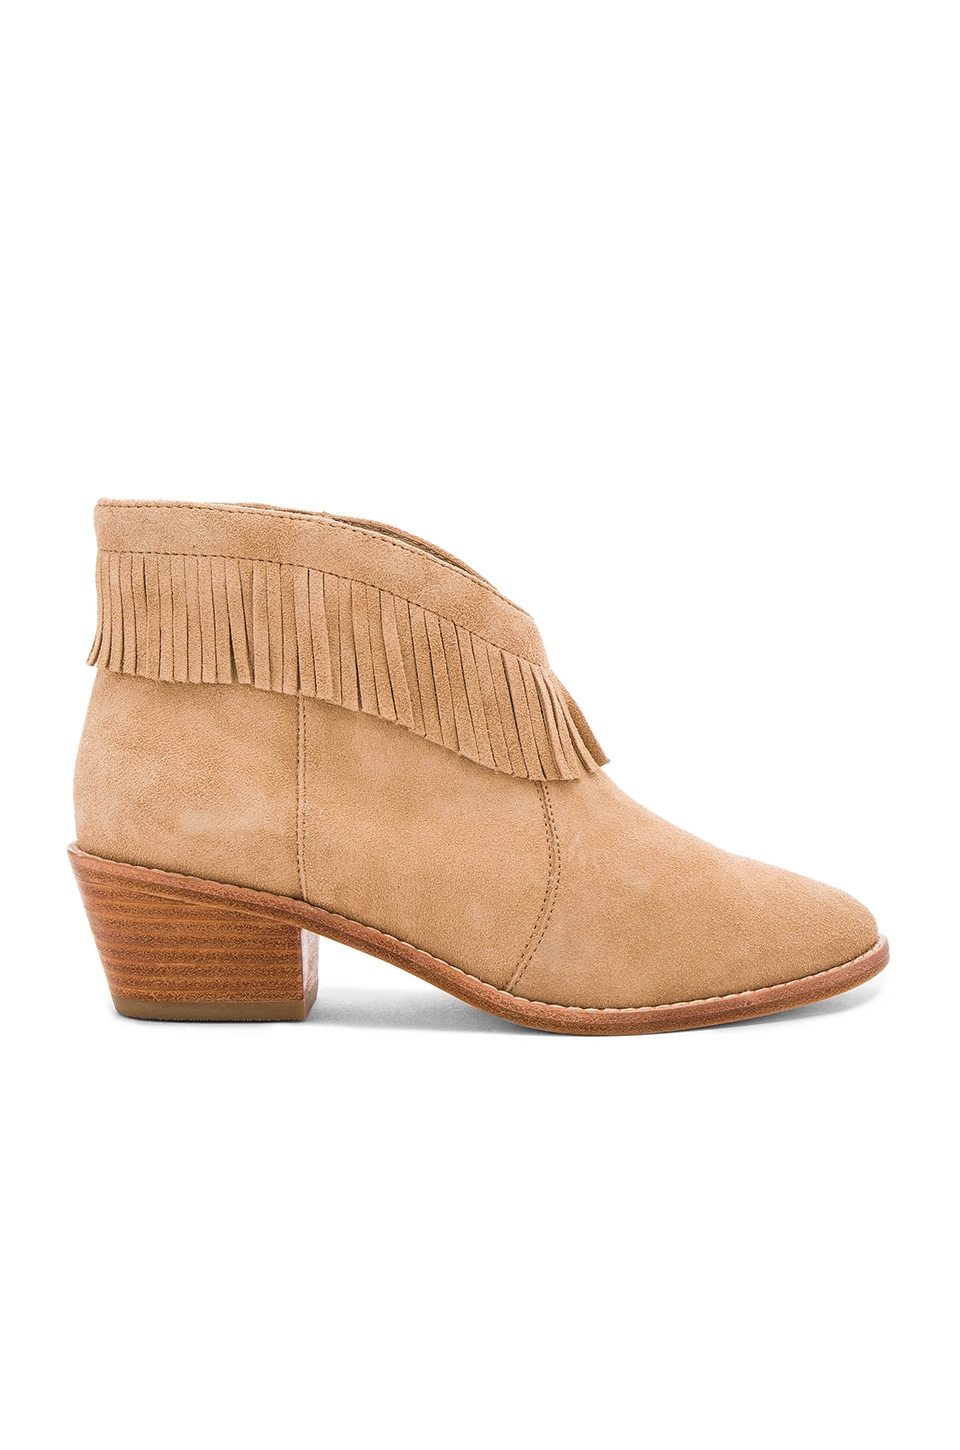 Makena Bootie by Joie